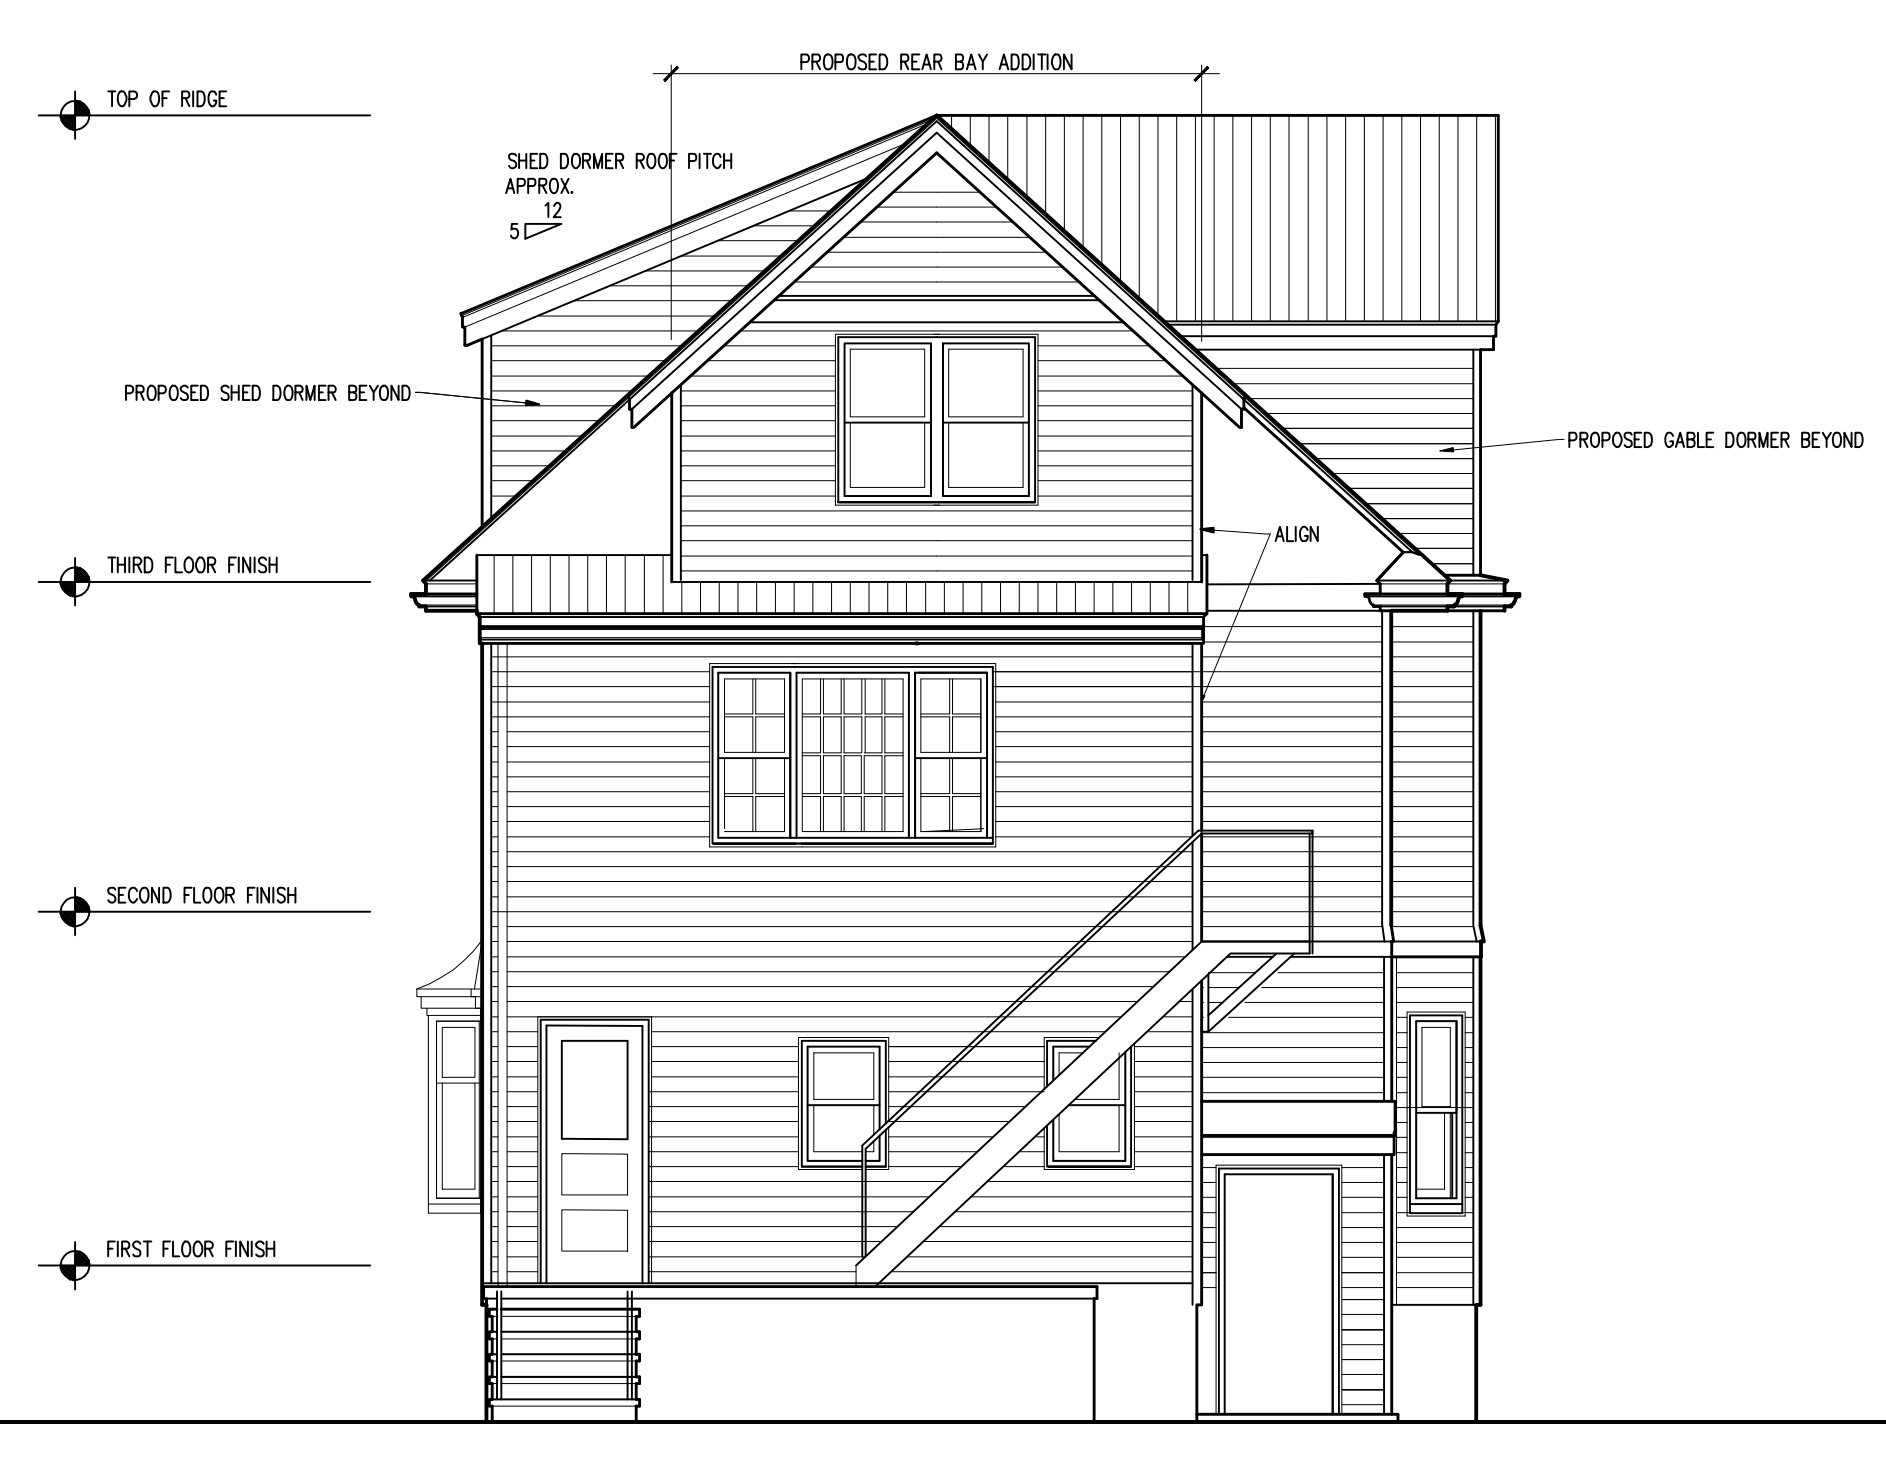 How Much Does It Cost To Add A Shed Dormer | Zef Jam